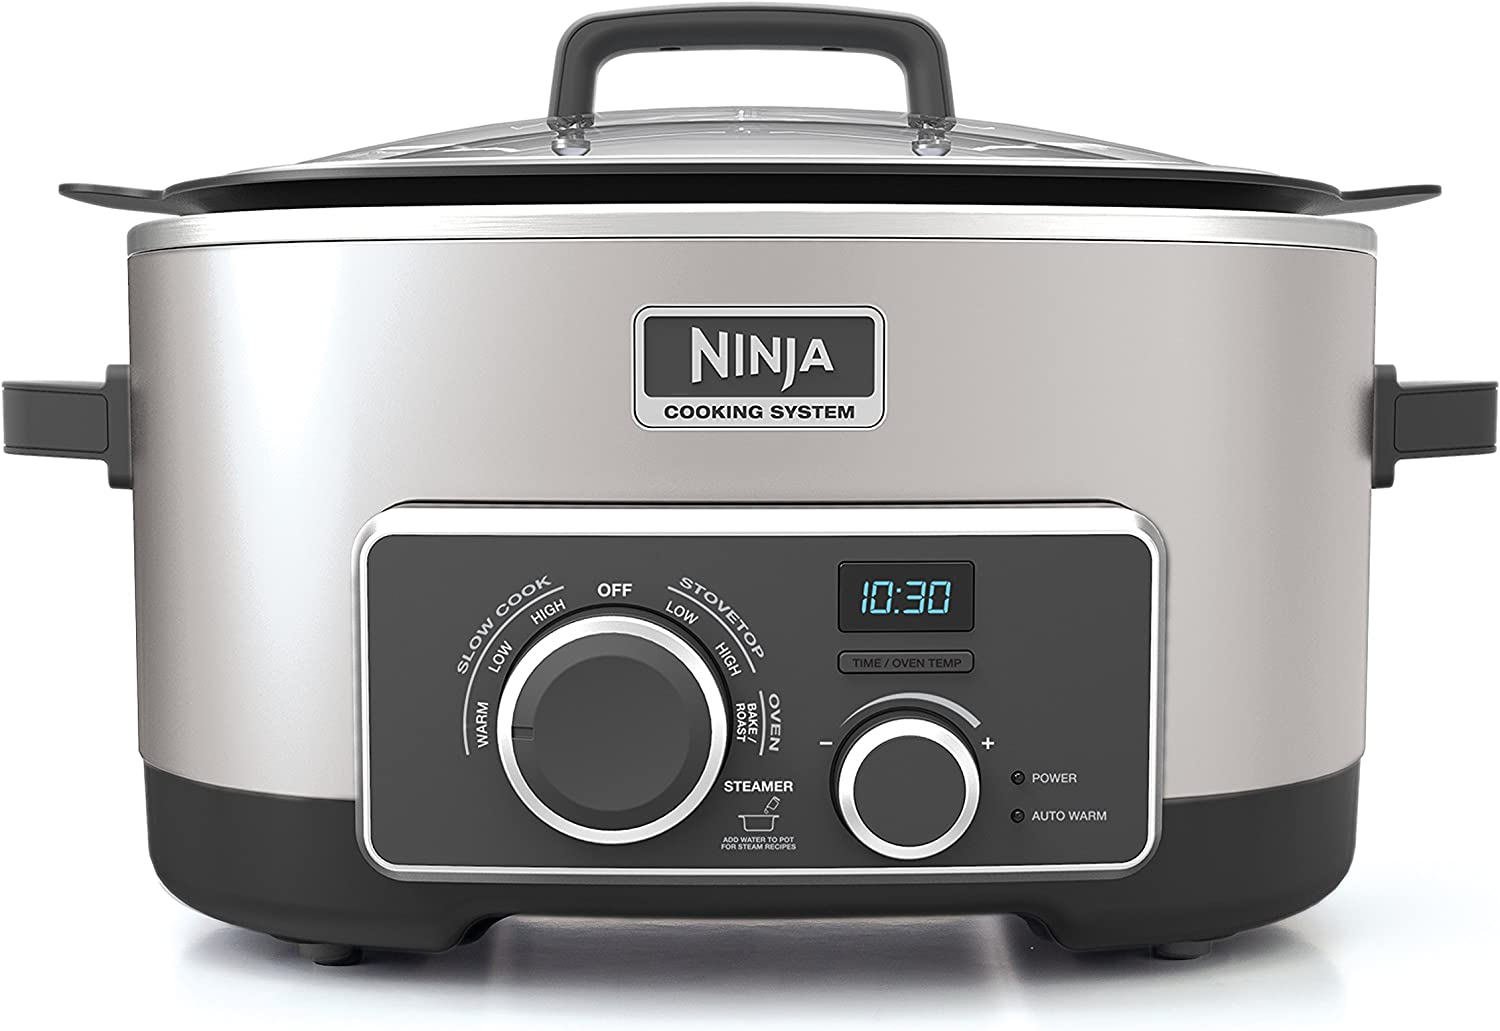 Ninja Multi-Cooker with 4-in-1 Stove Top, Oven, Steam Slow Cooker Options, 6-Quart Nonstick Pot, and Steaming Roasting Rack MC950ZSS , Stainless